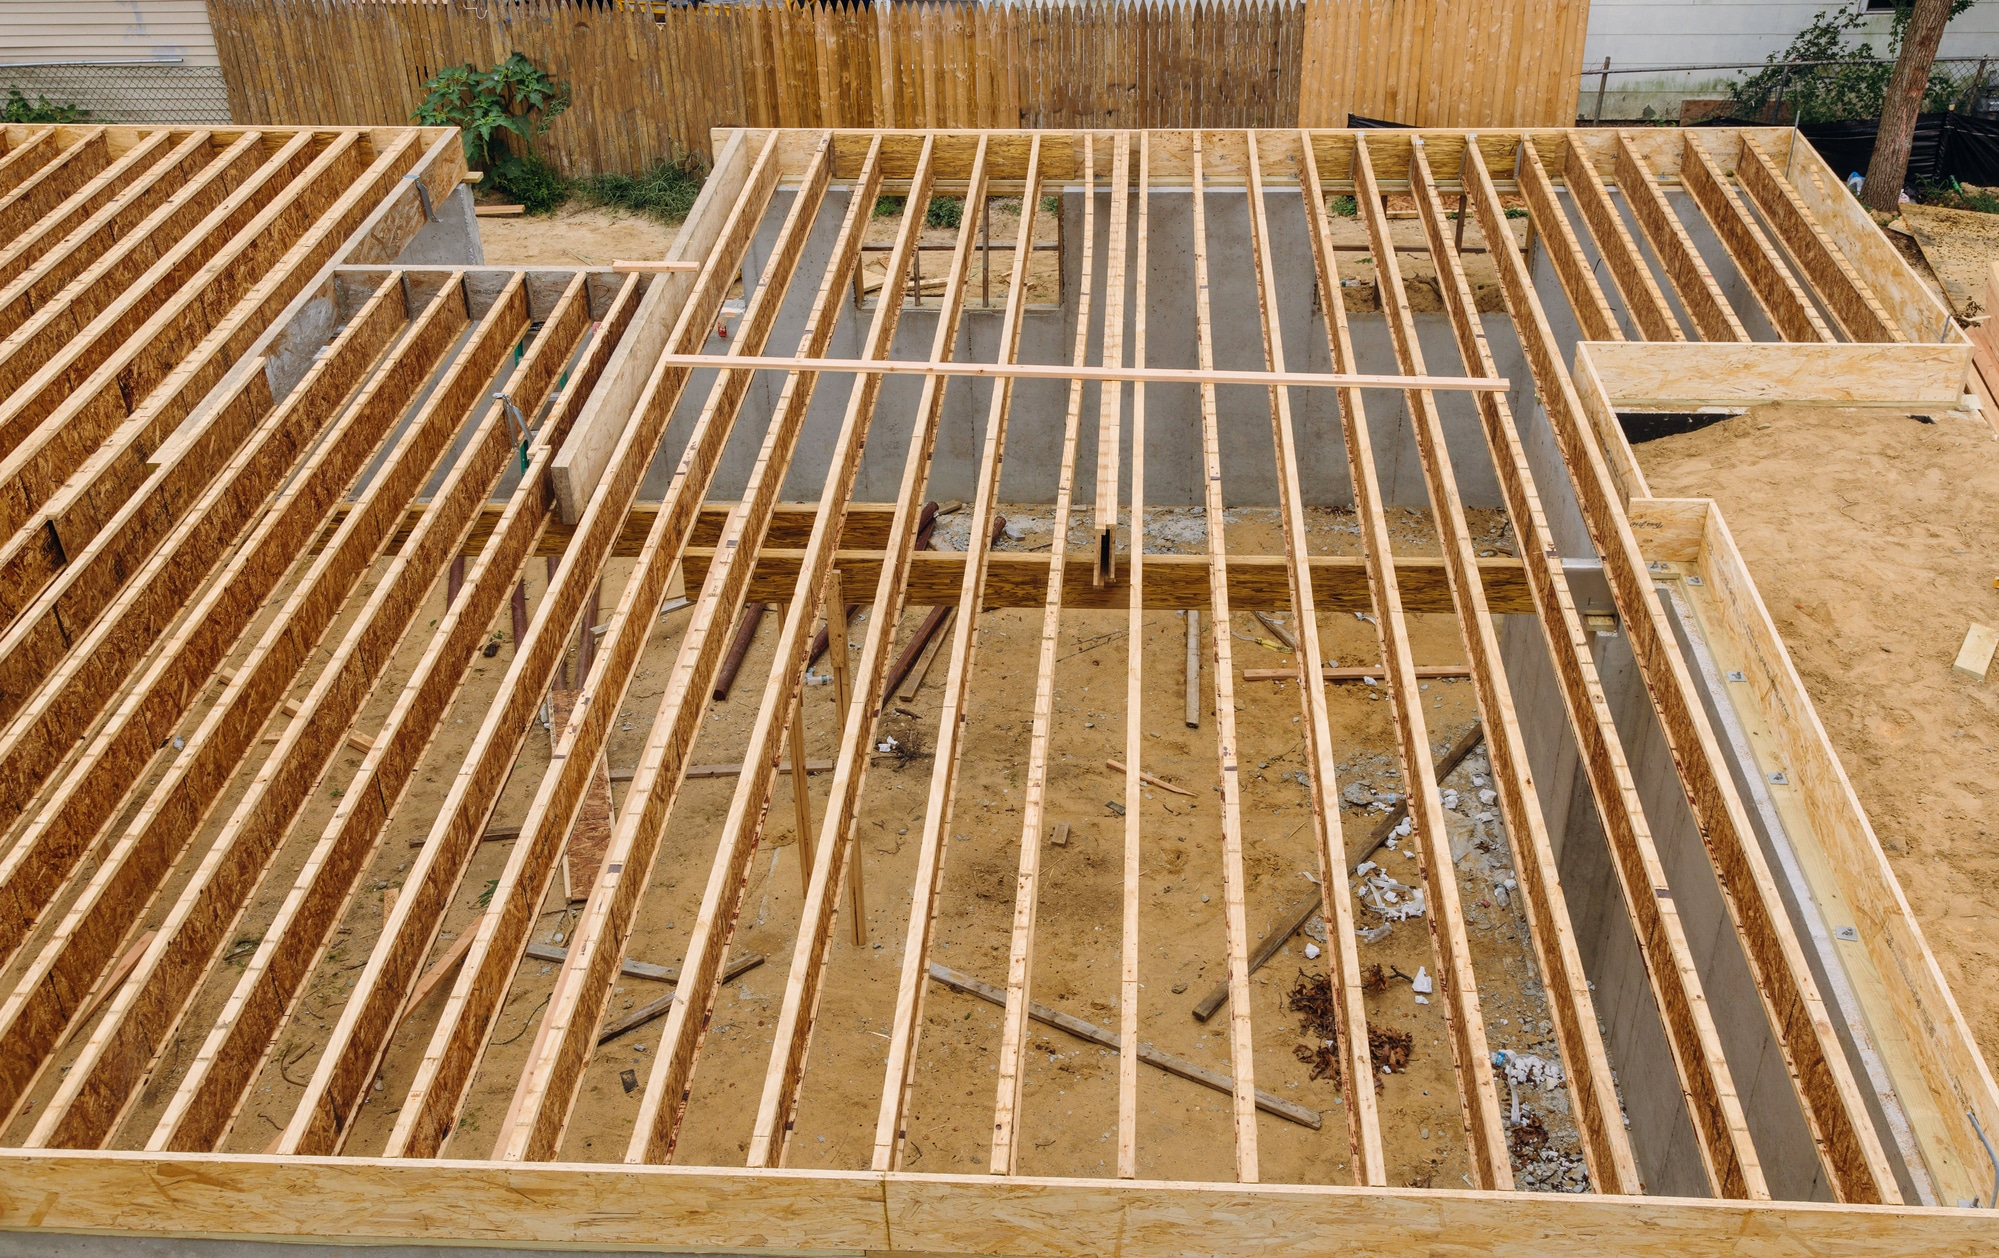 House framing floor construction showing joists trusses